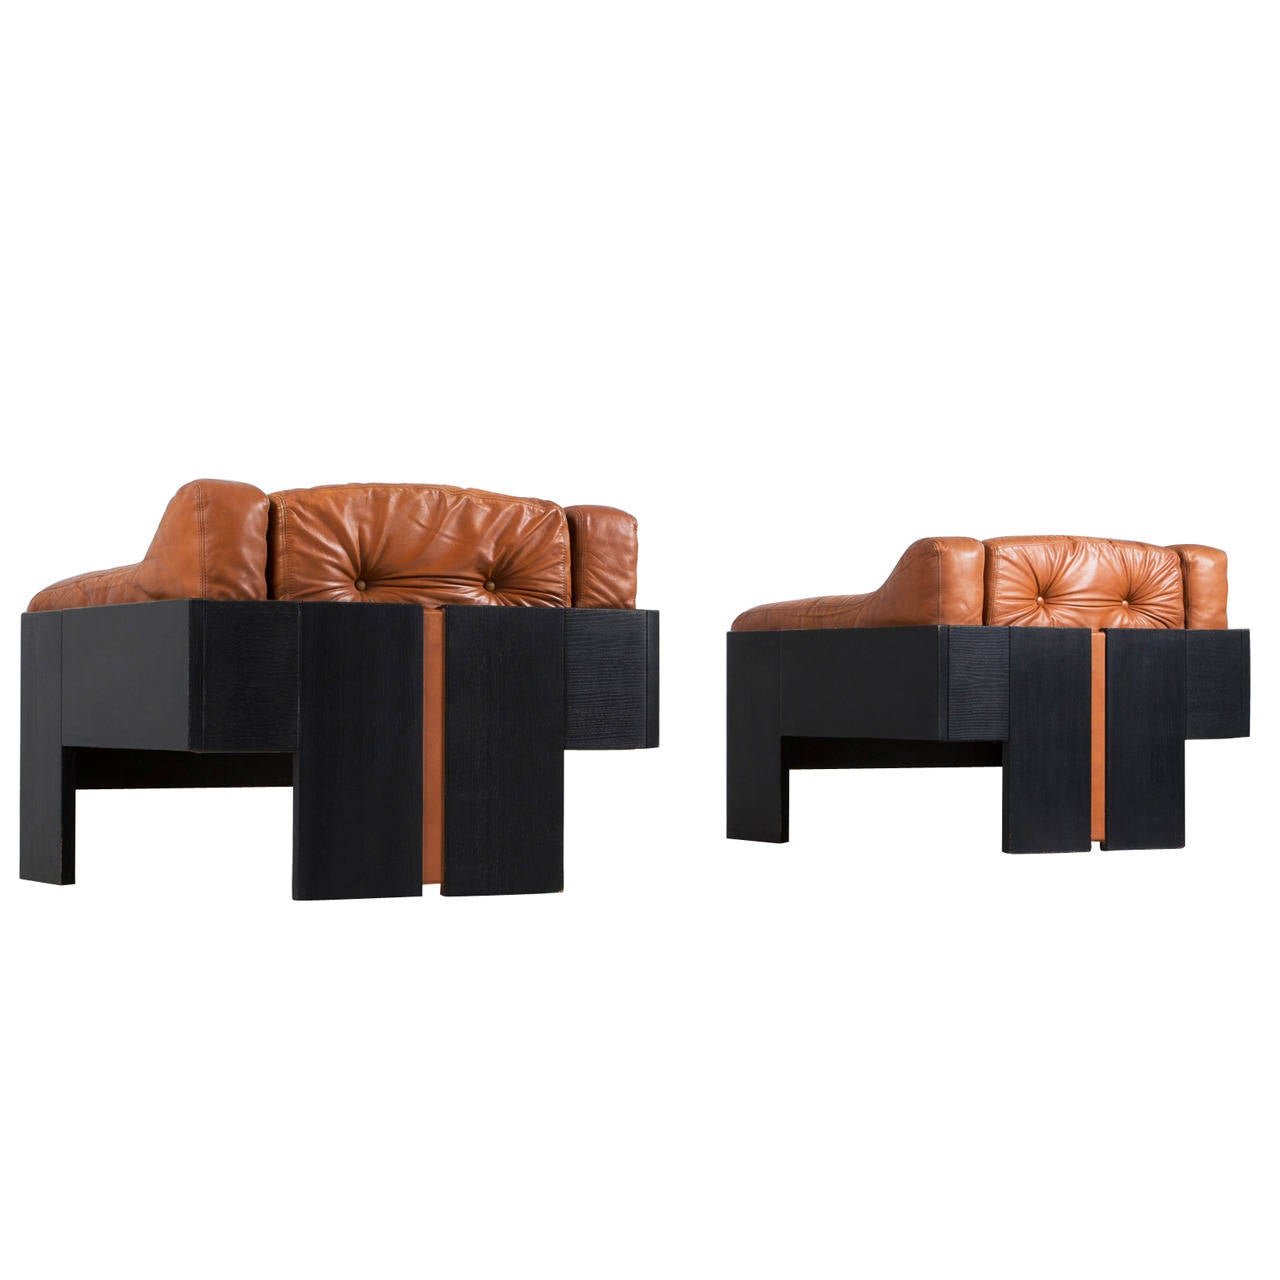 Of four chairs in oak and patinated cognac leather for sale at 1stdibs - Set Of Two Cognac Leather Lounge Chairs By Claudio Salocchi 1